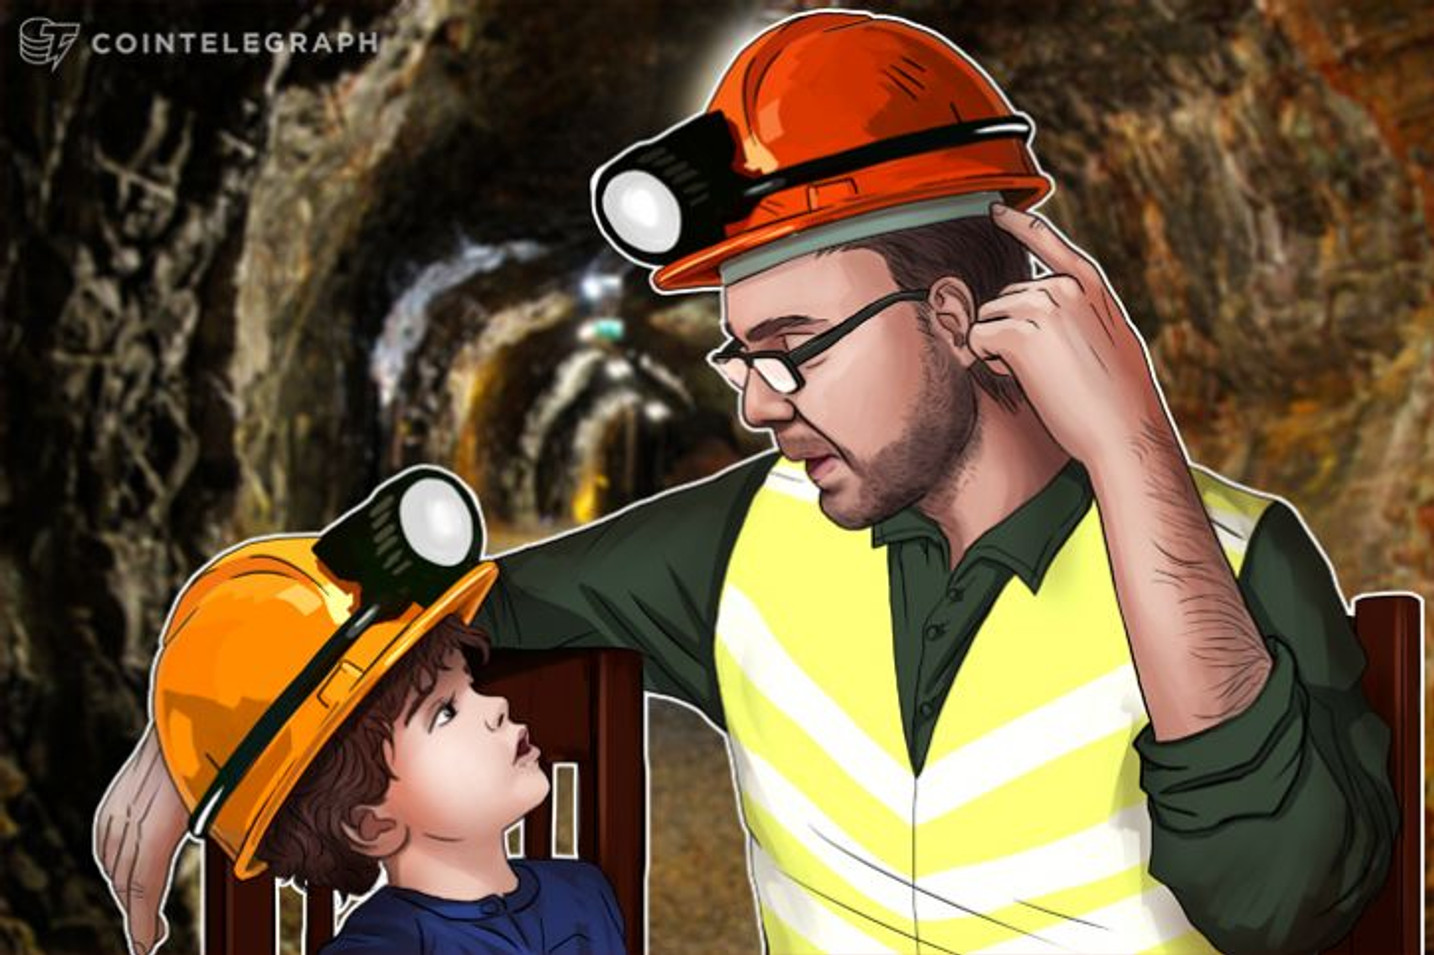 Russia May Ban Bitcoin Mining In Residential Homes Over Electricity Costs, Heating